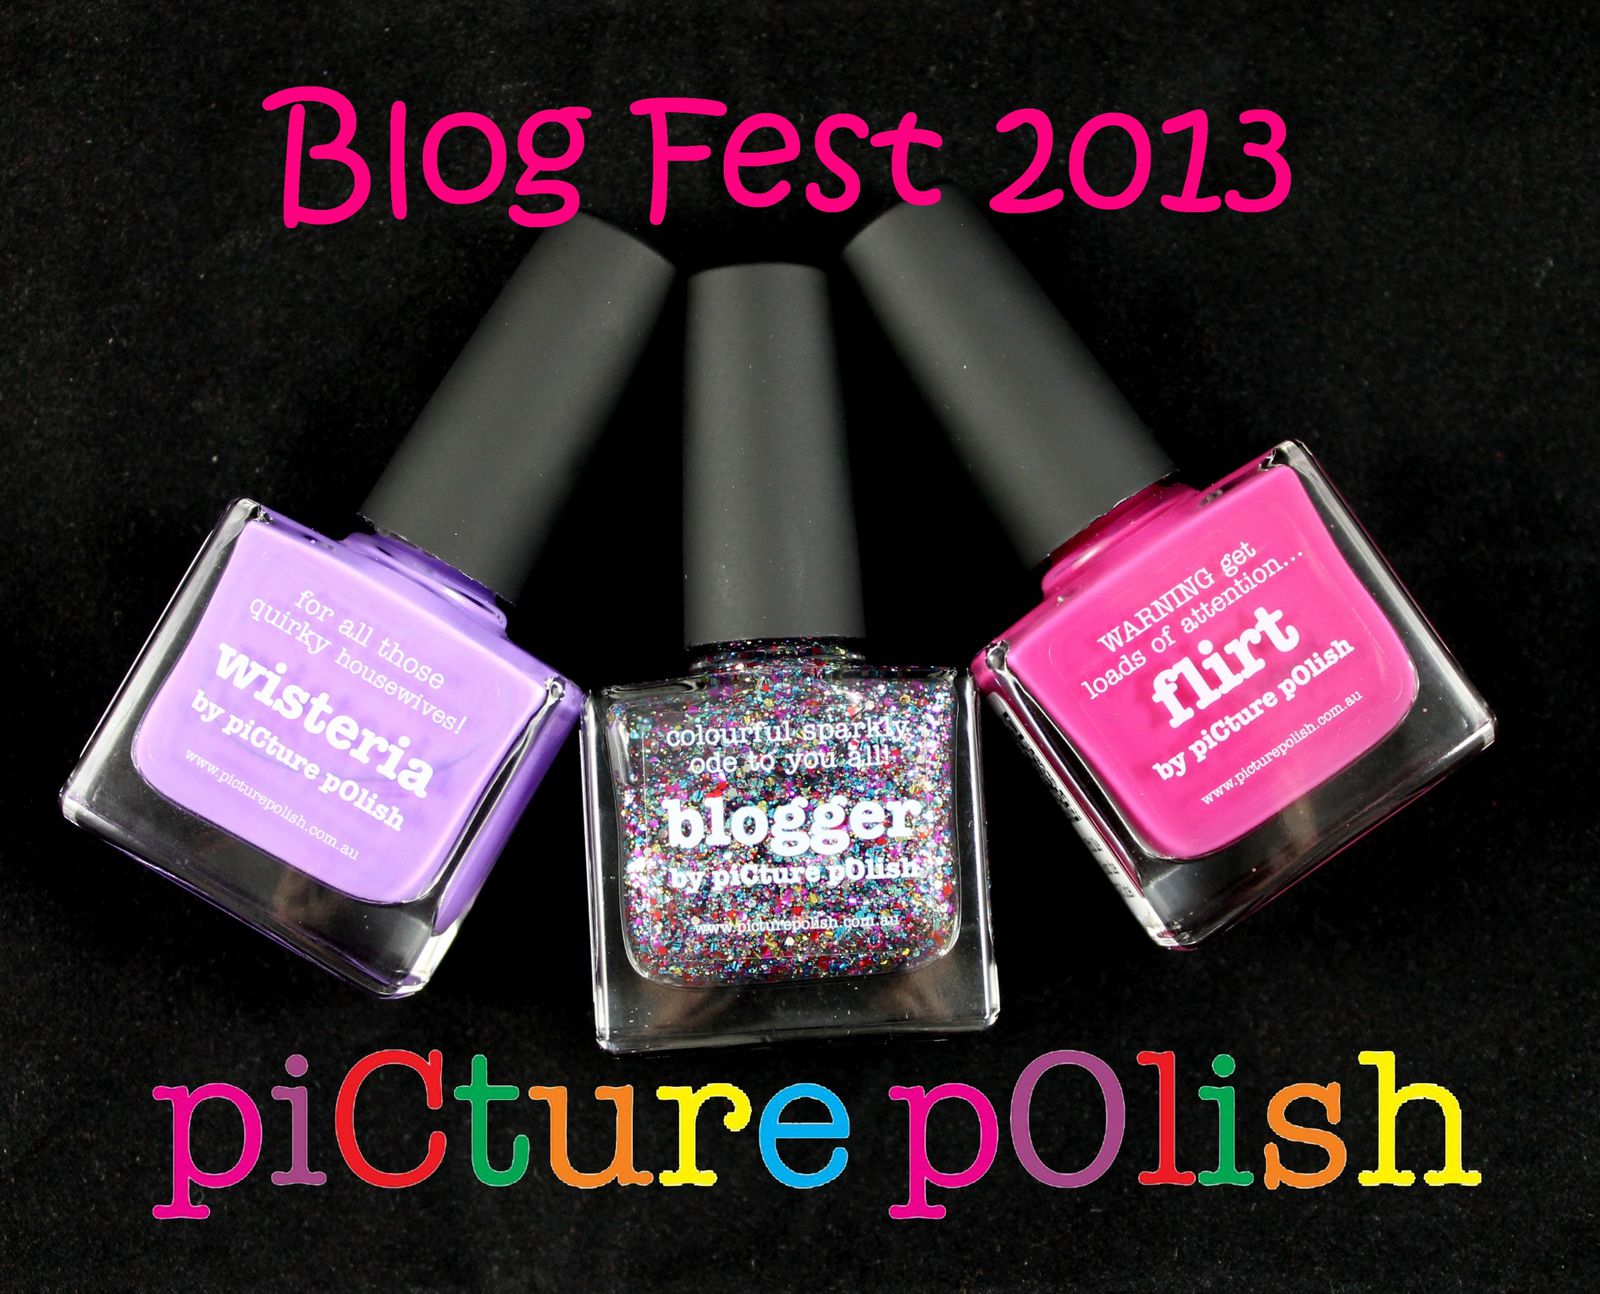 Theme:  'Year of the Blogger' - This year it's all about you and celebrating what you do!